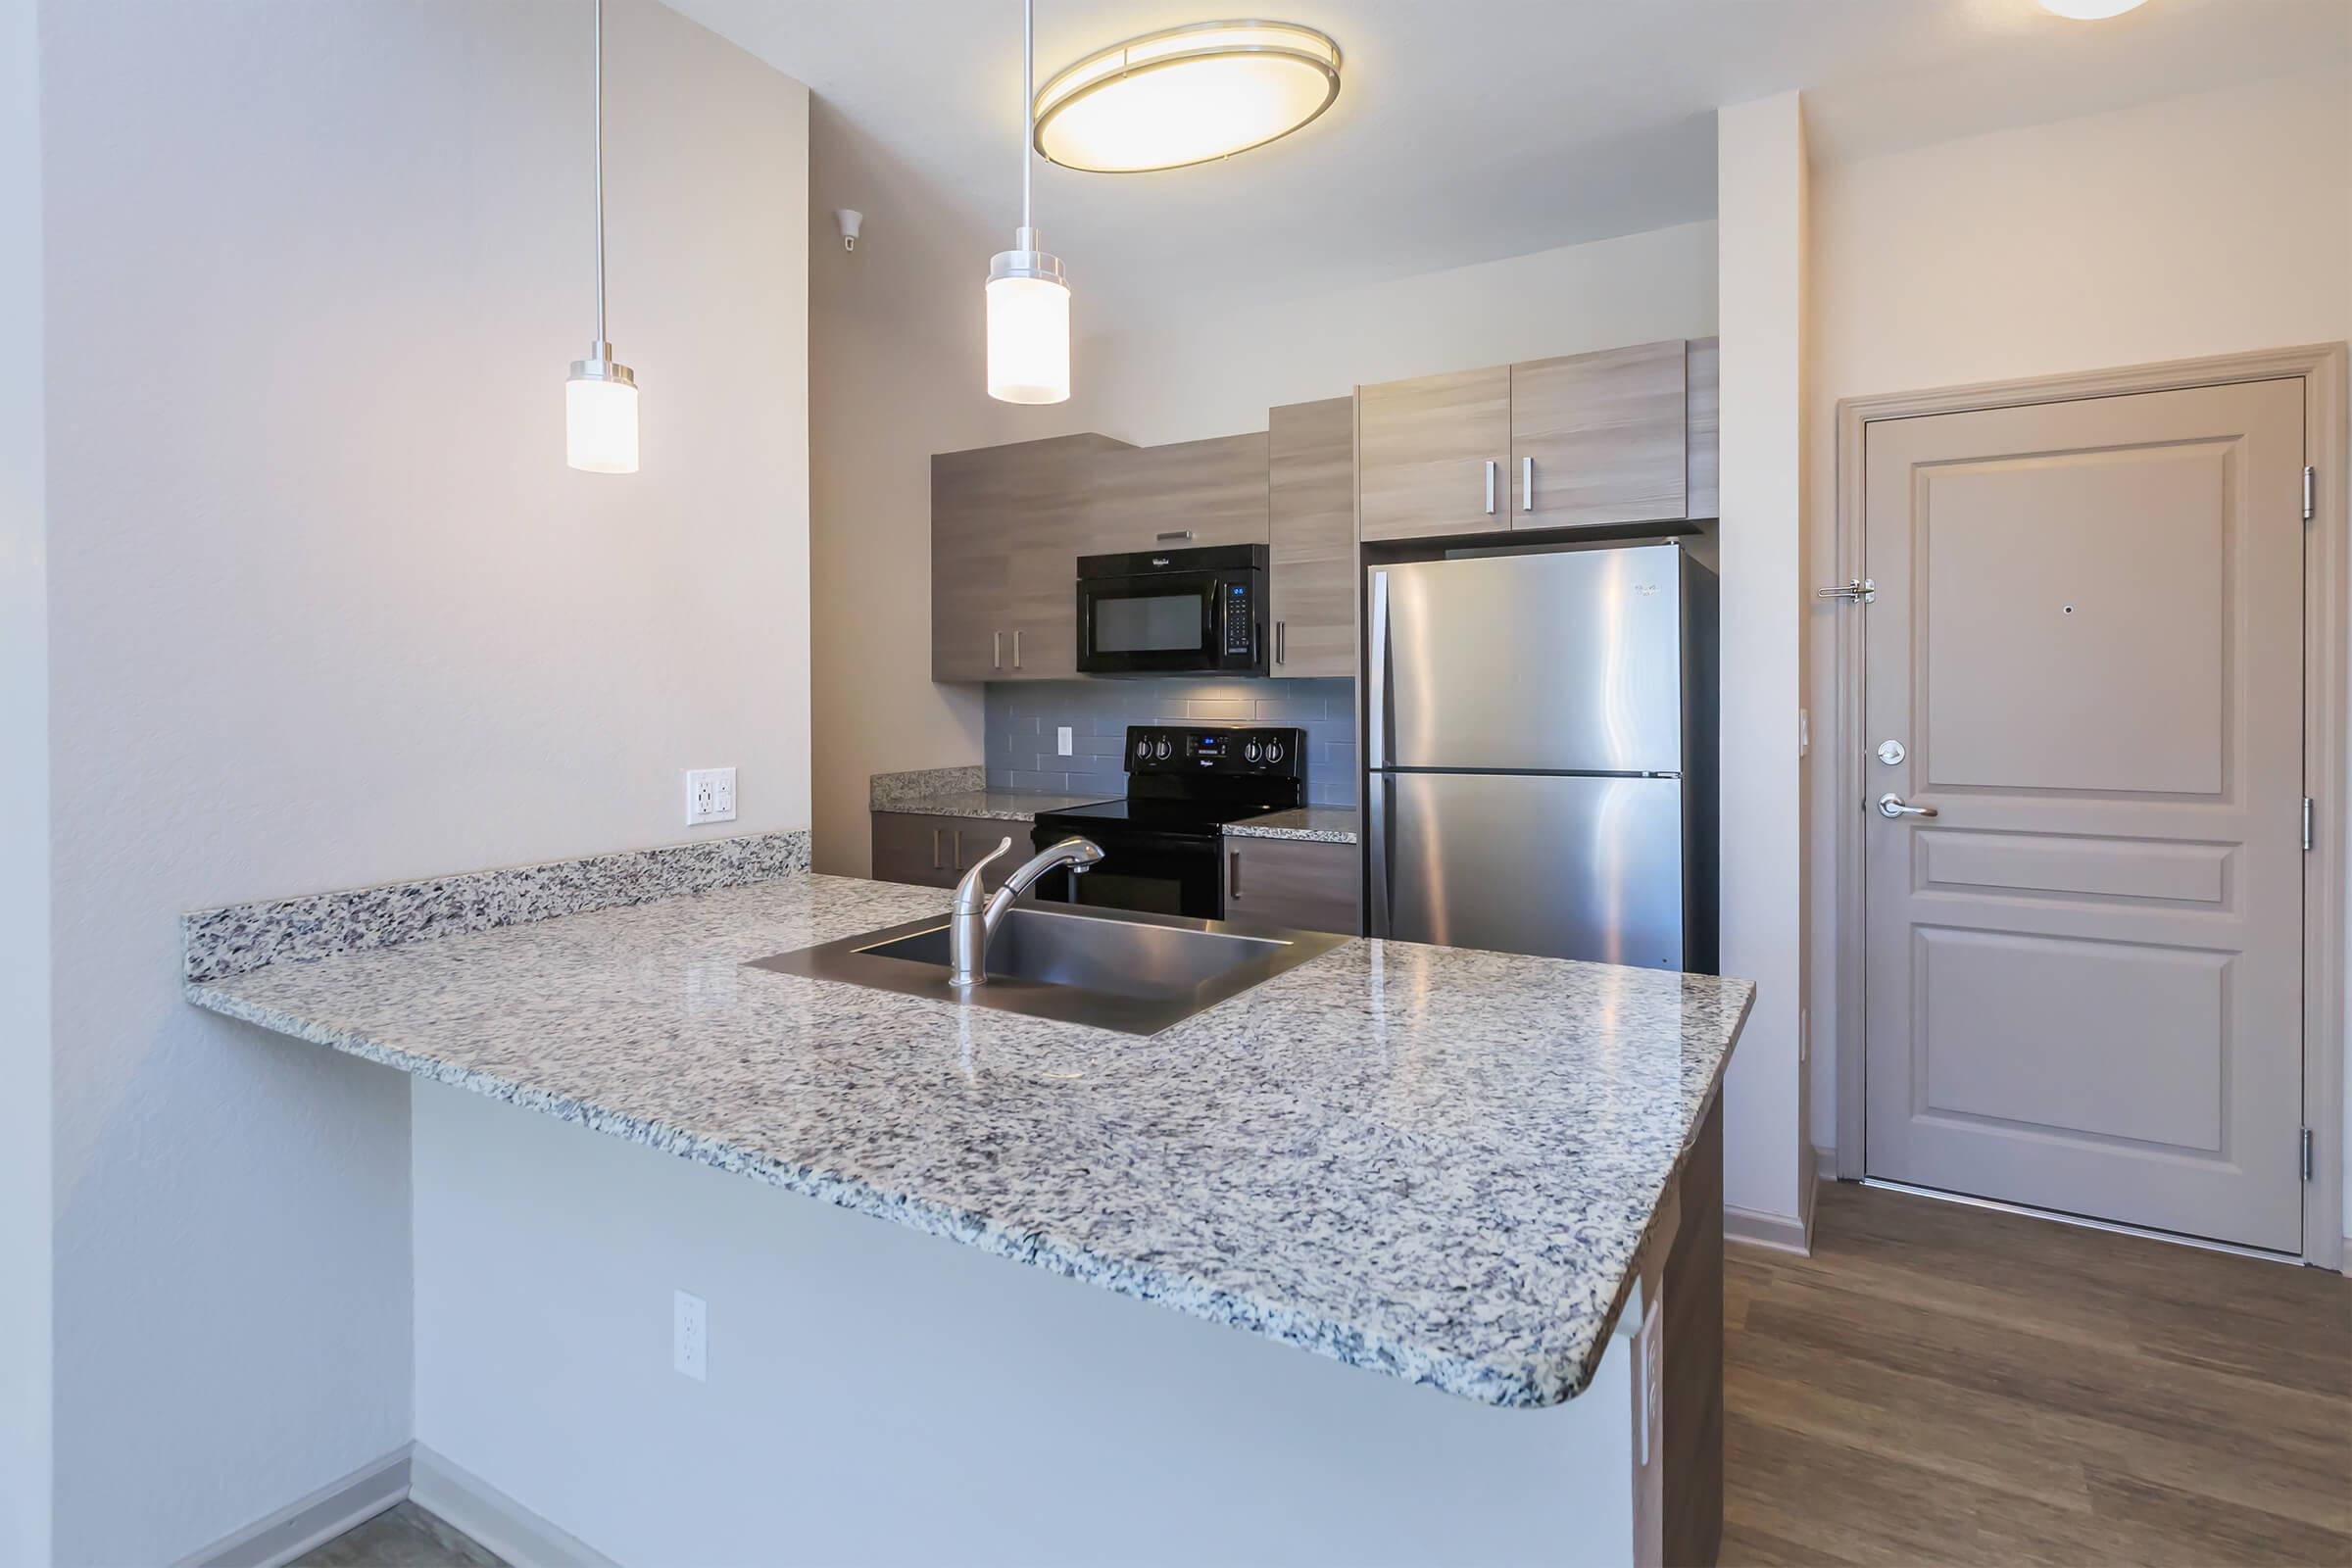 Kitchen at RiZE at Winter Springs Apartments in Winter Springs, FL